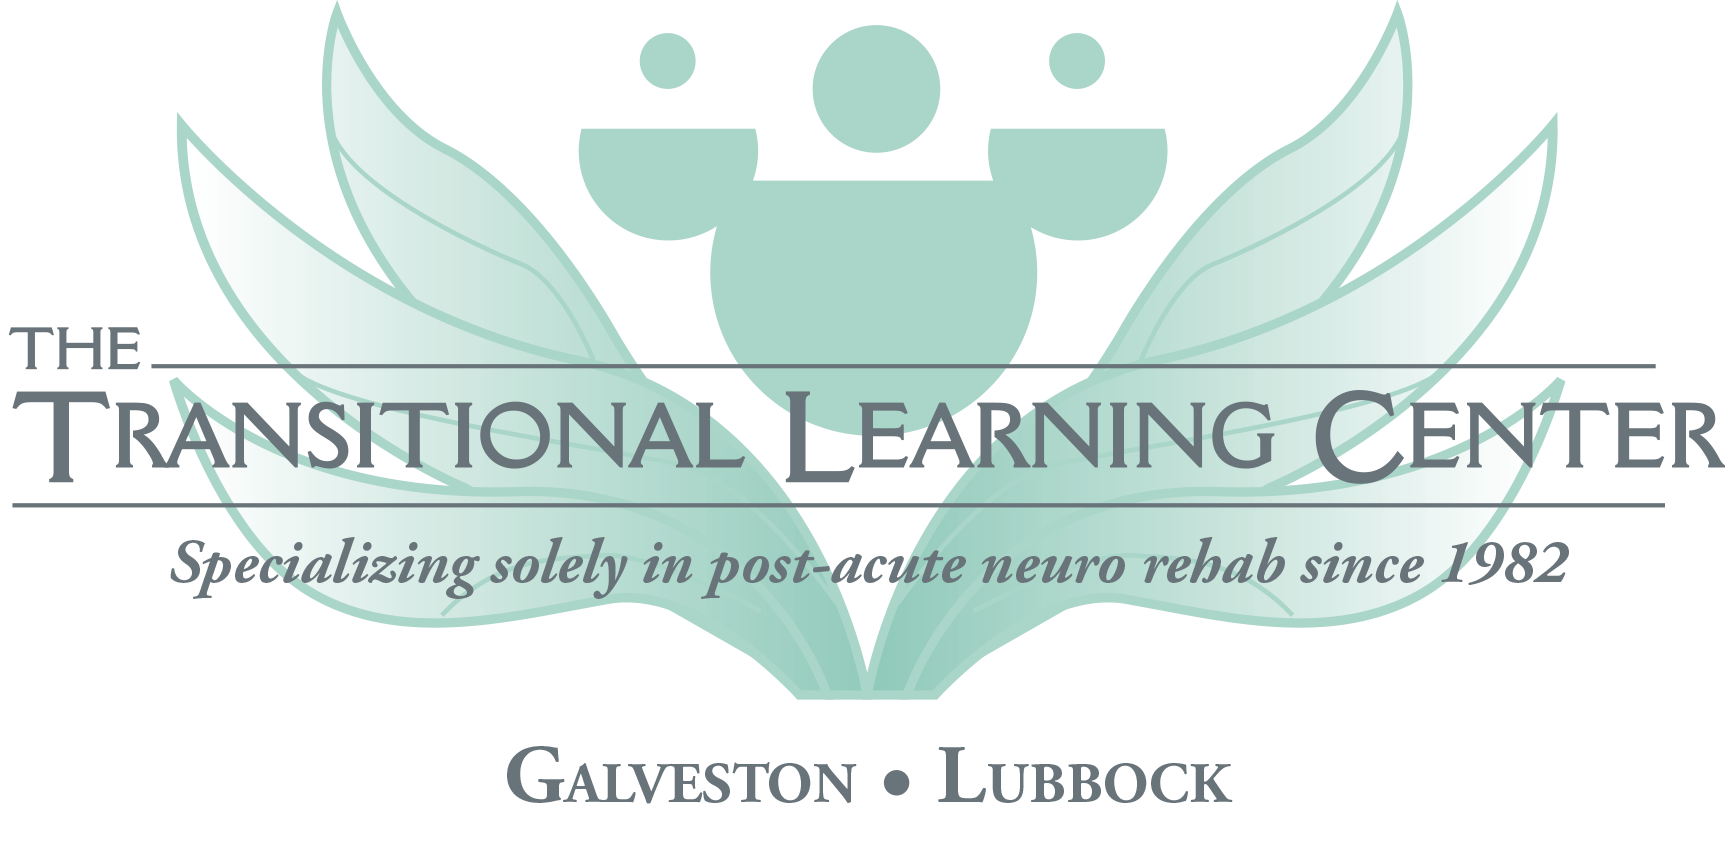 The Transitional Learning Center at Galveston (TLC)